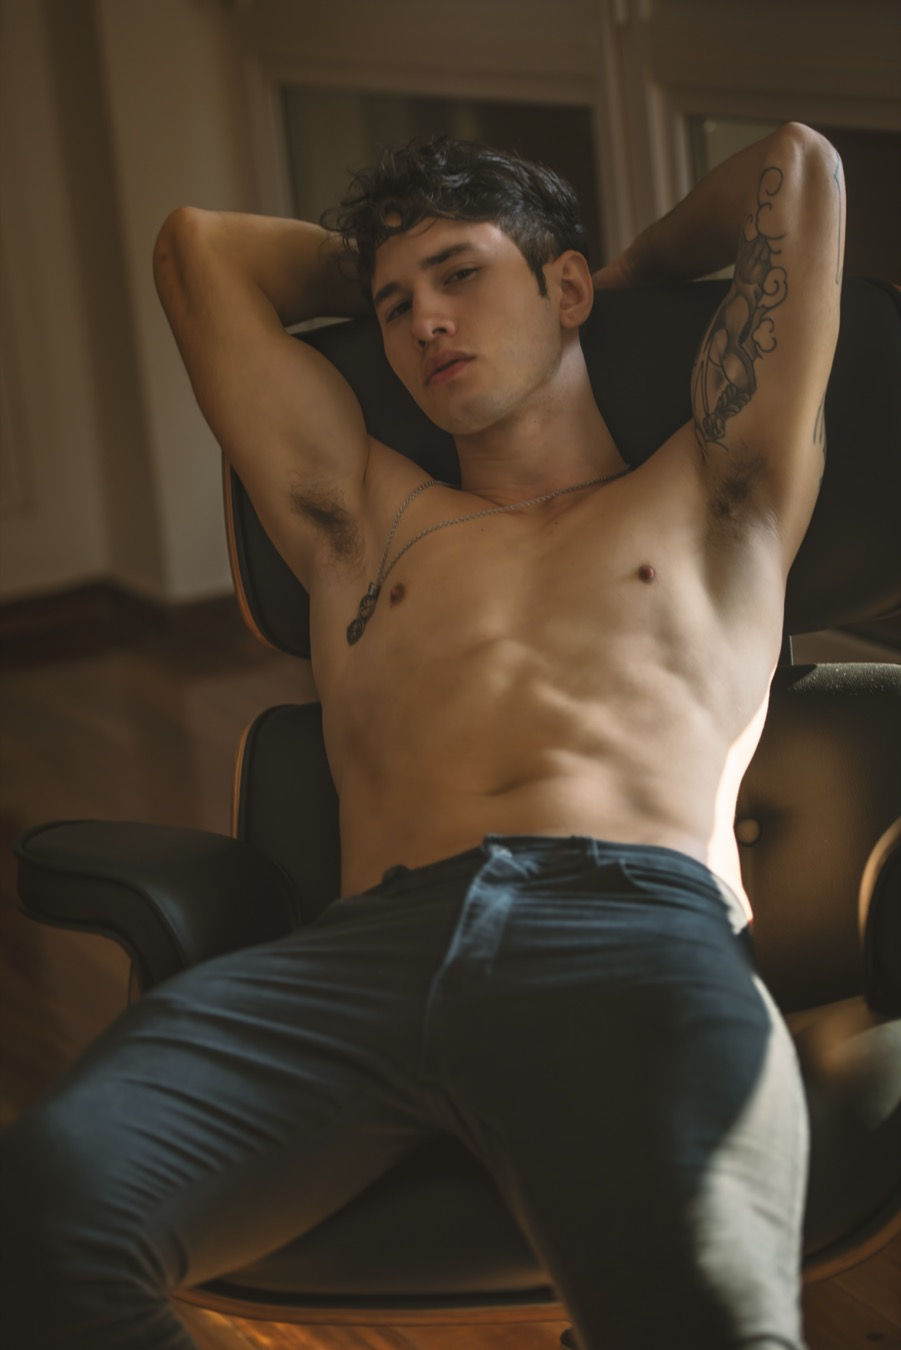 A web-exclusive featuring model Gustavo Salazar captured by photographer Carlos Andrés Montoya